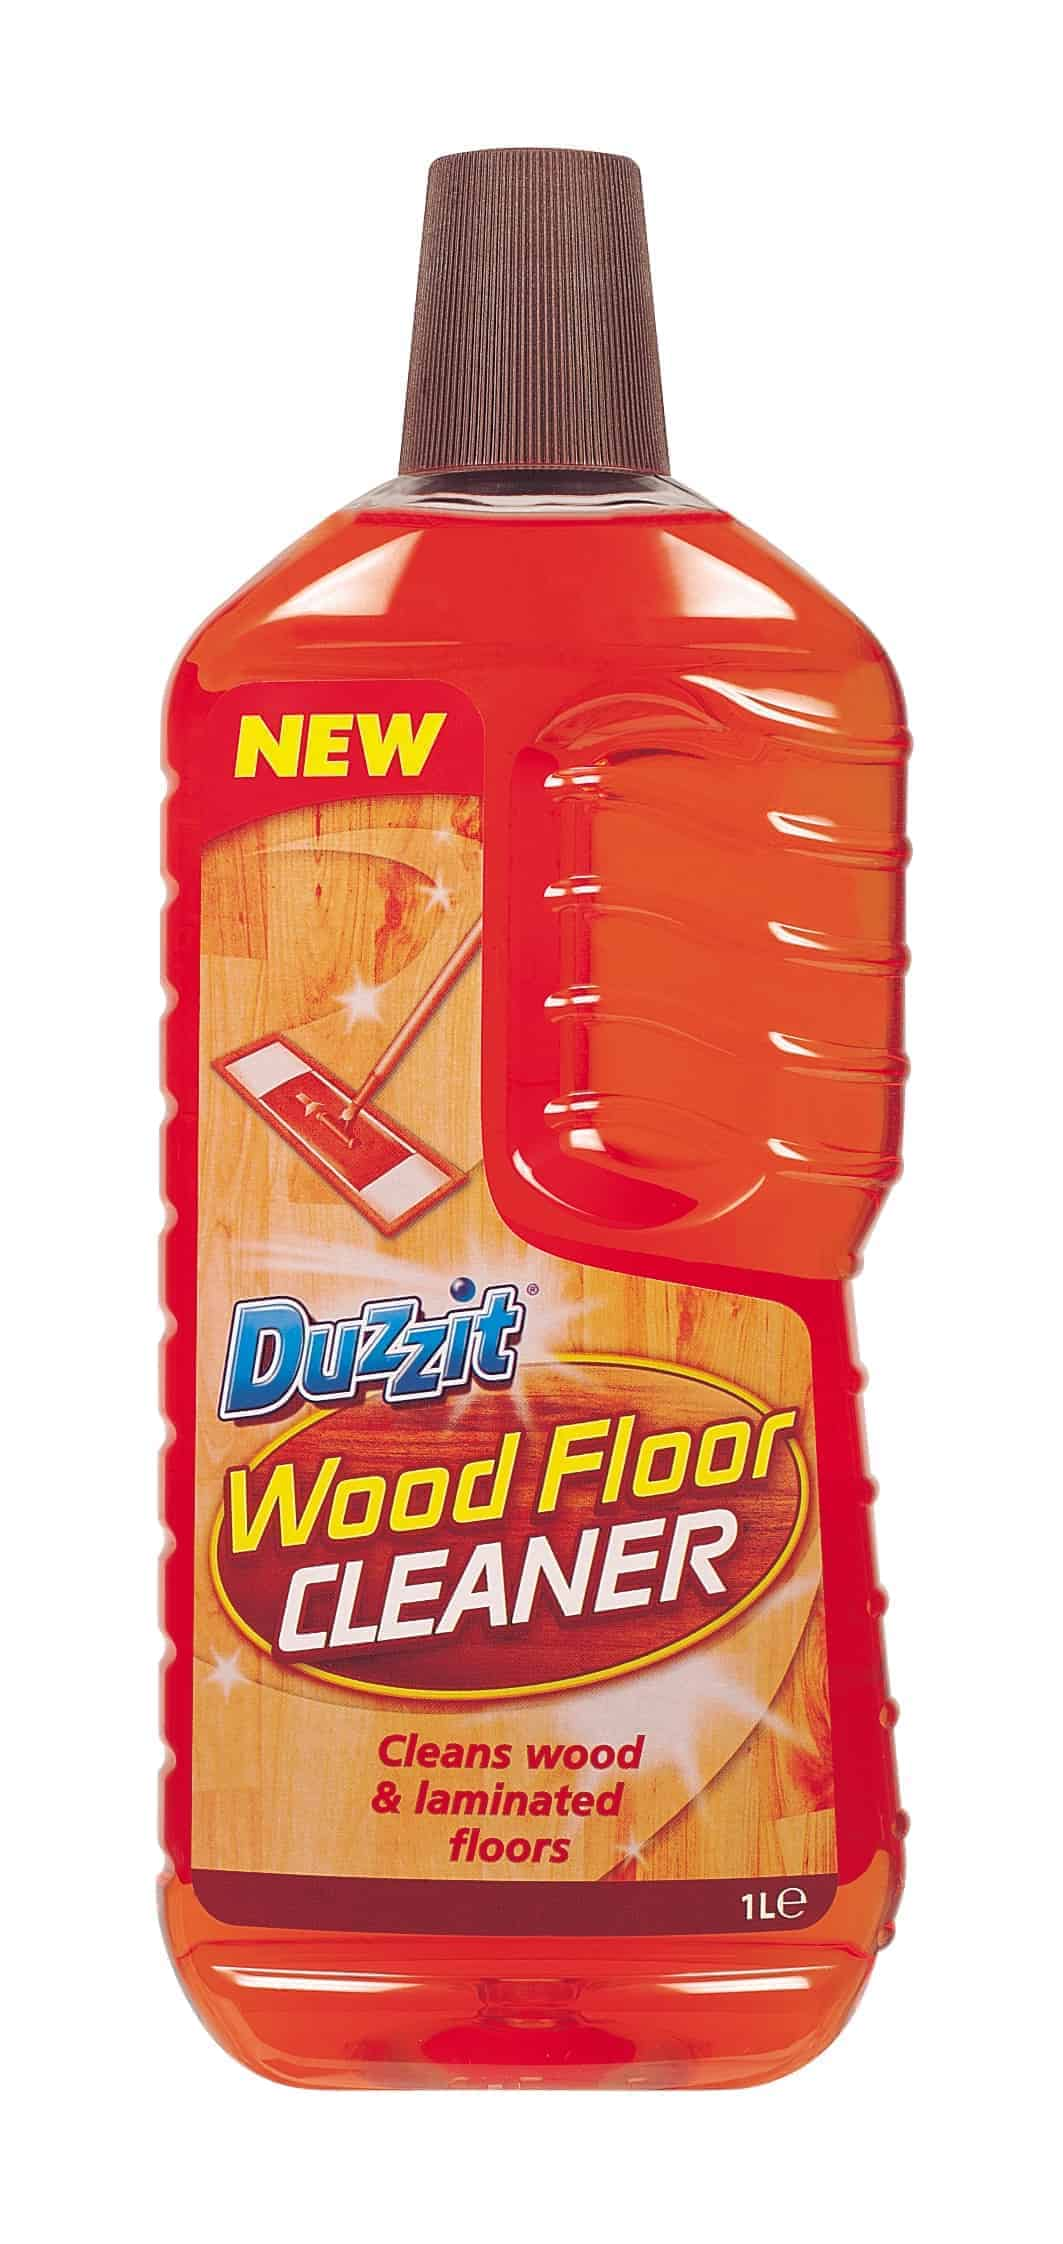 Duzzit Wood Floor Cleaner-151